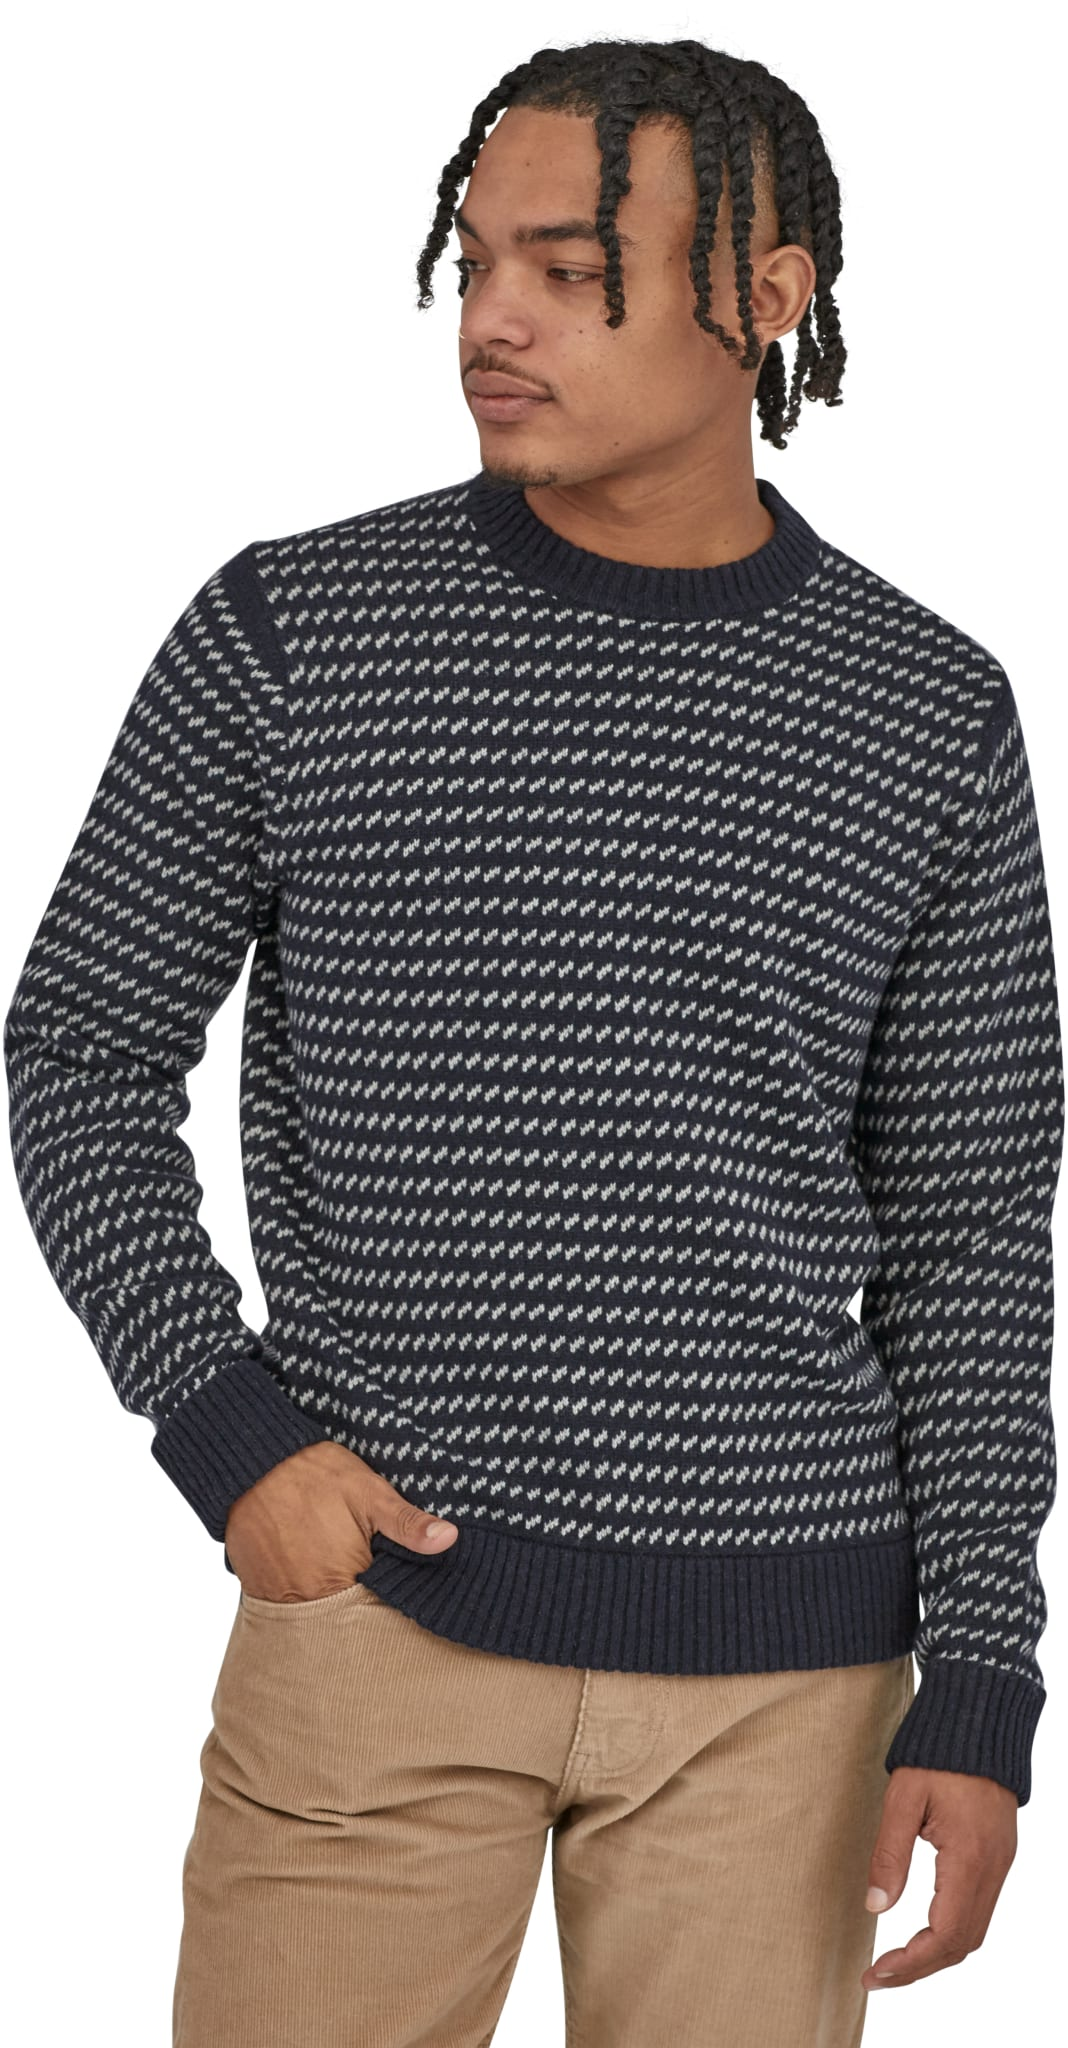 Recycled Wool Sweater Ms